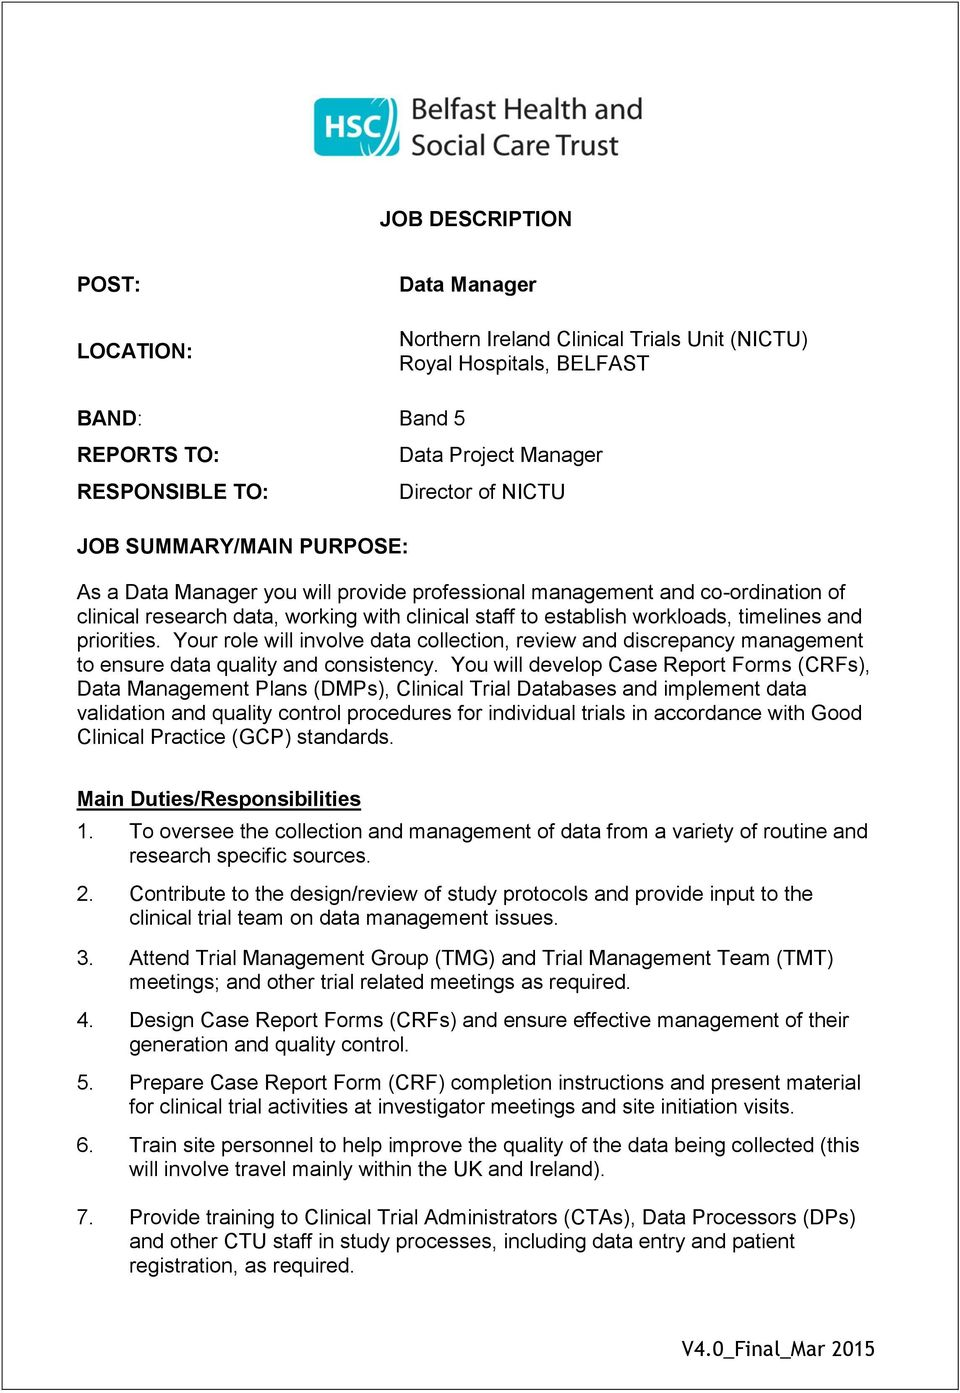 JOB DESCRIPTION Northern Ireland Clinical Trials Unit NICTU – Quality Control Job Description